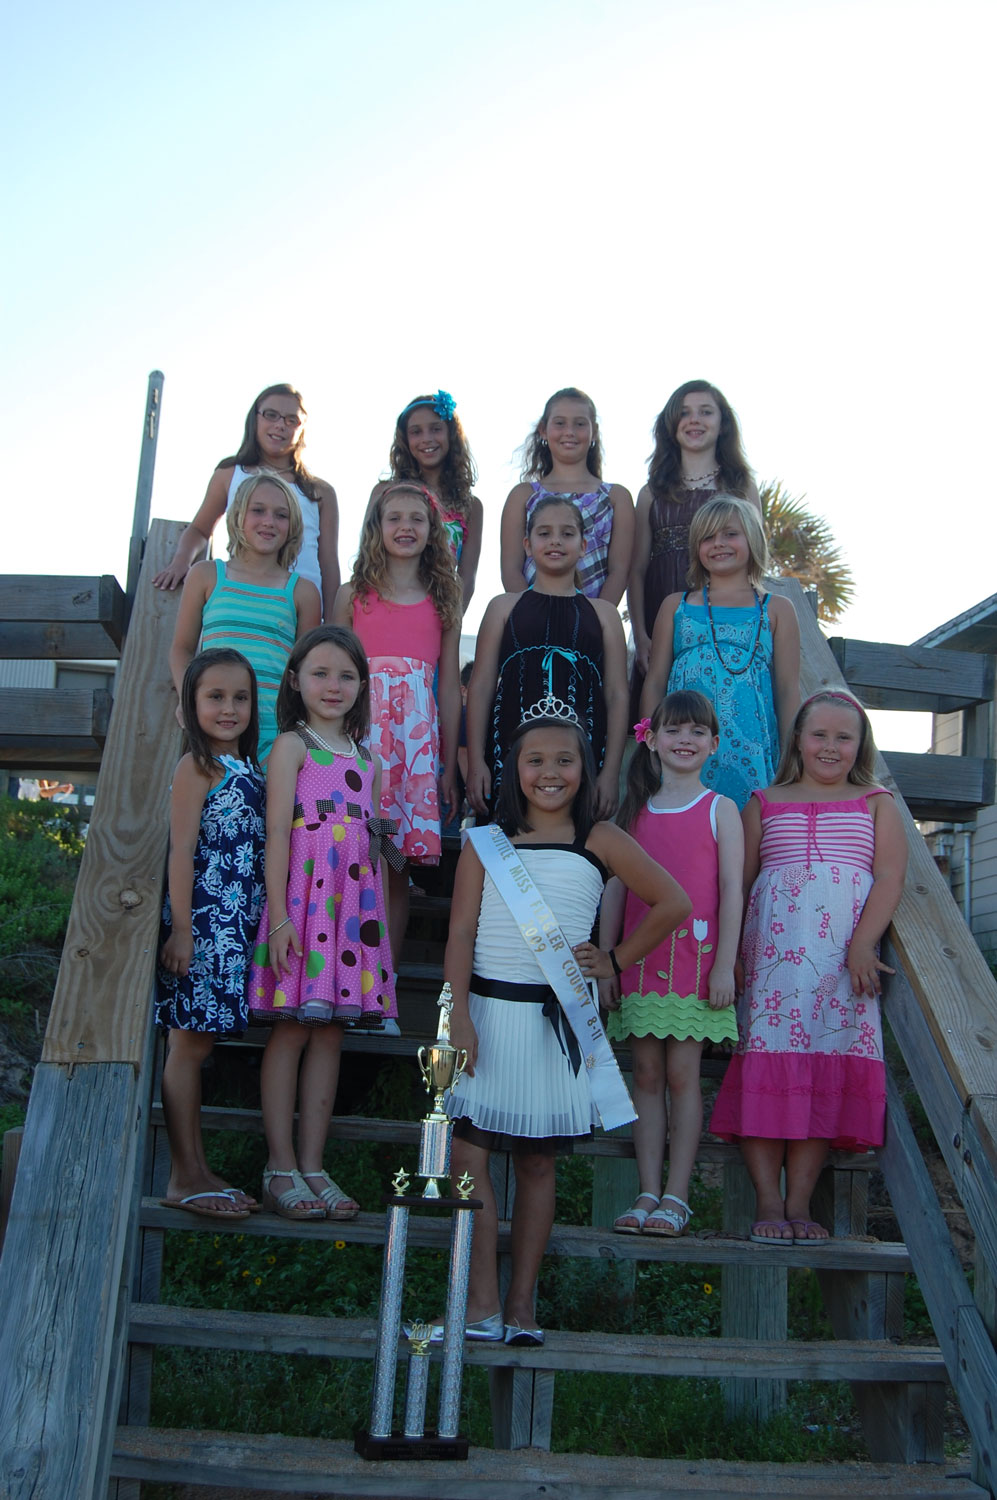 flagler beach girls The boys & girls clubs of volusia/flagler counties currently operates eight clubs in the following locations: deland/spring hill, deltona/harris saxon, lake helen/blake park, edgewater, new smyrna beach, daytona beach, holly hill, palm coast/rymfire elementary.